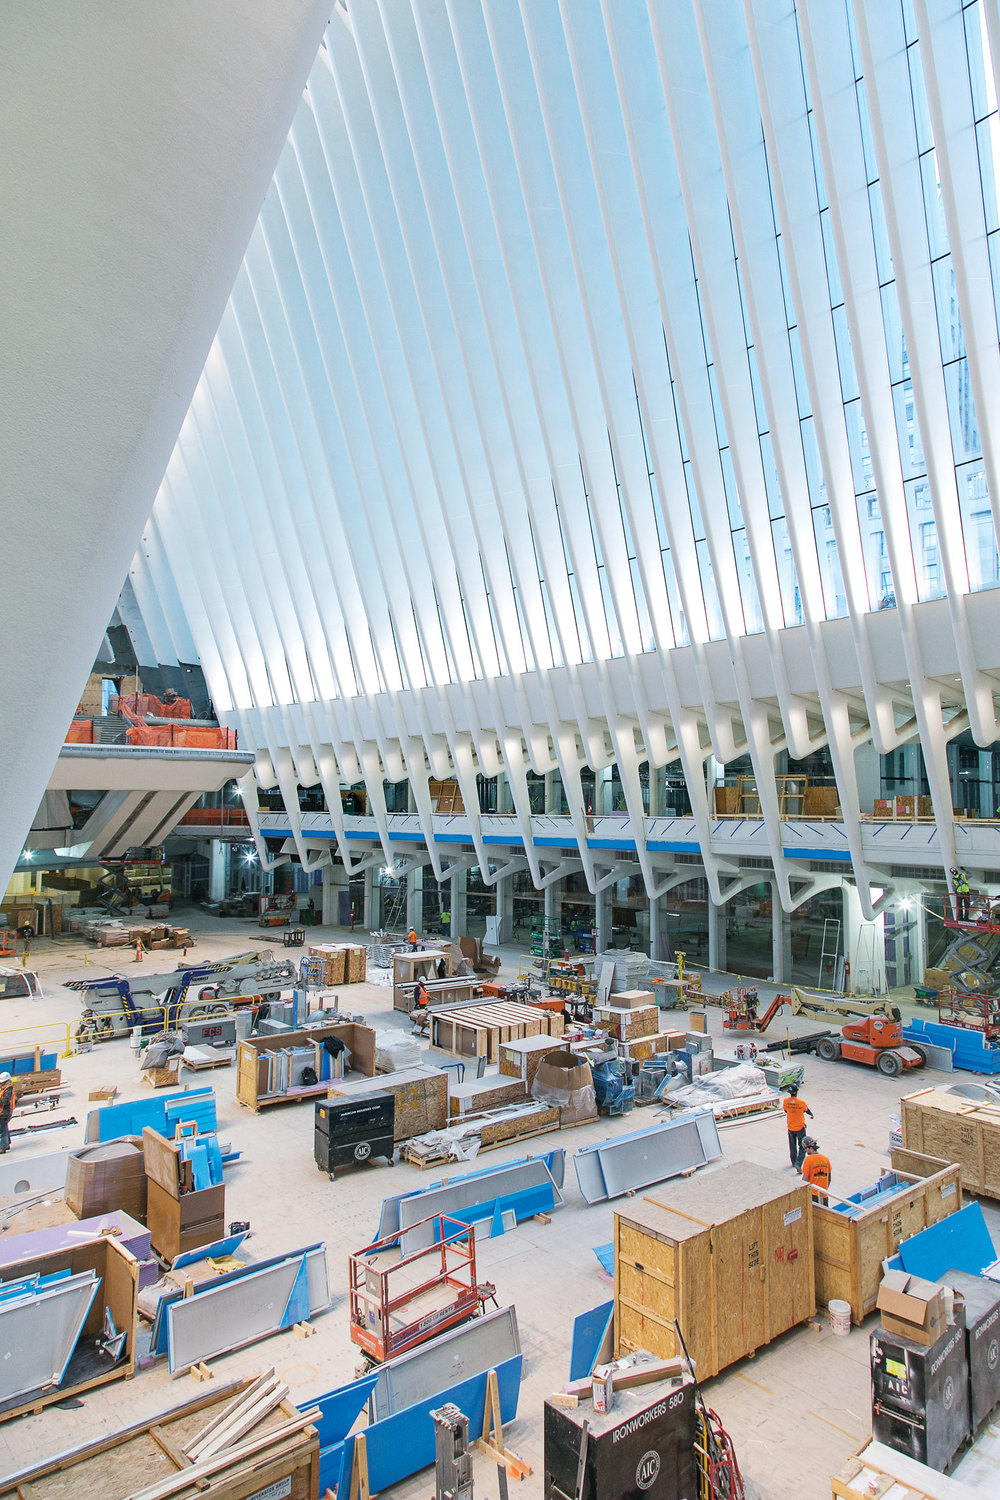 Santiago Calatrava's World Trade Center transportation hub. (Photo: Ogata/Surface)